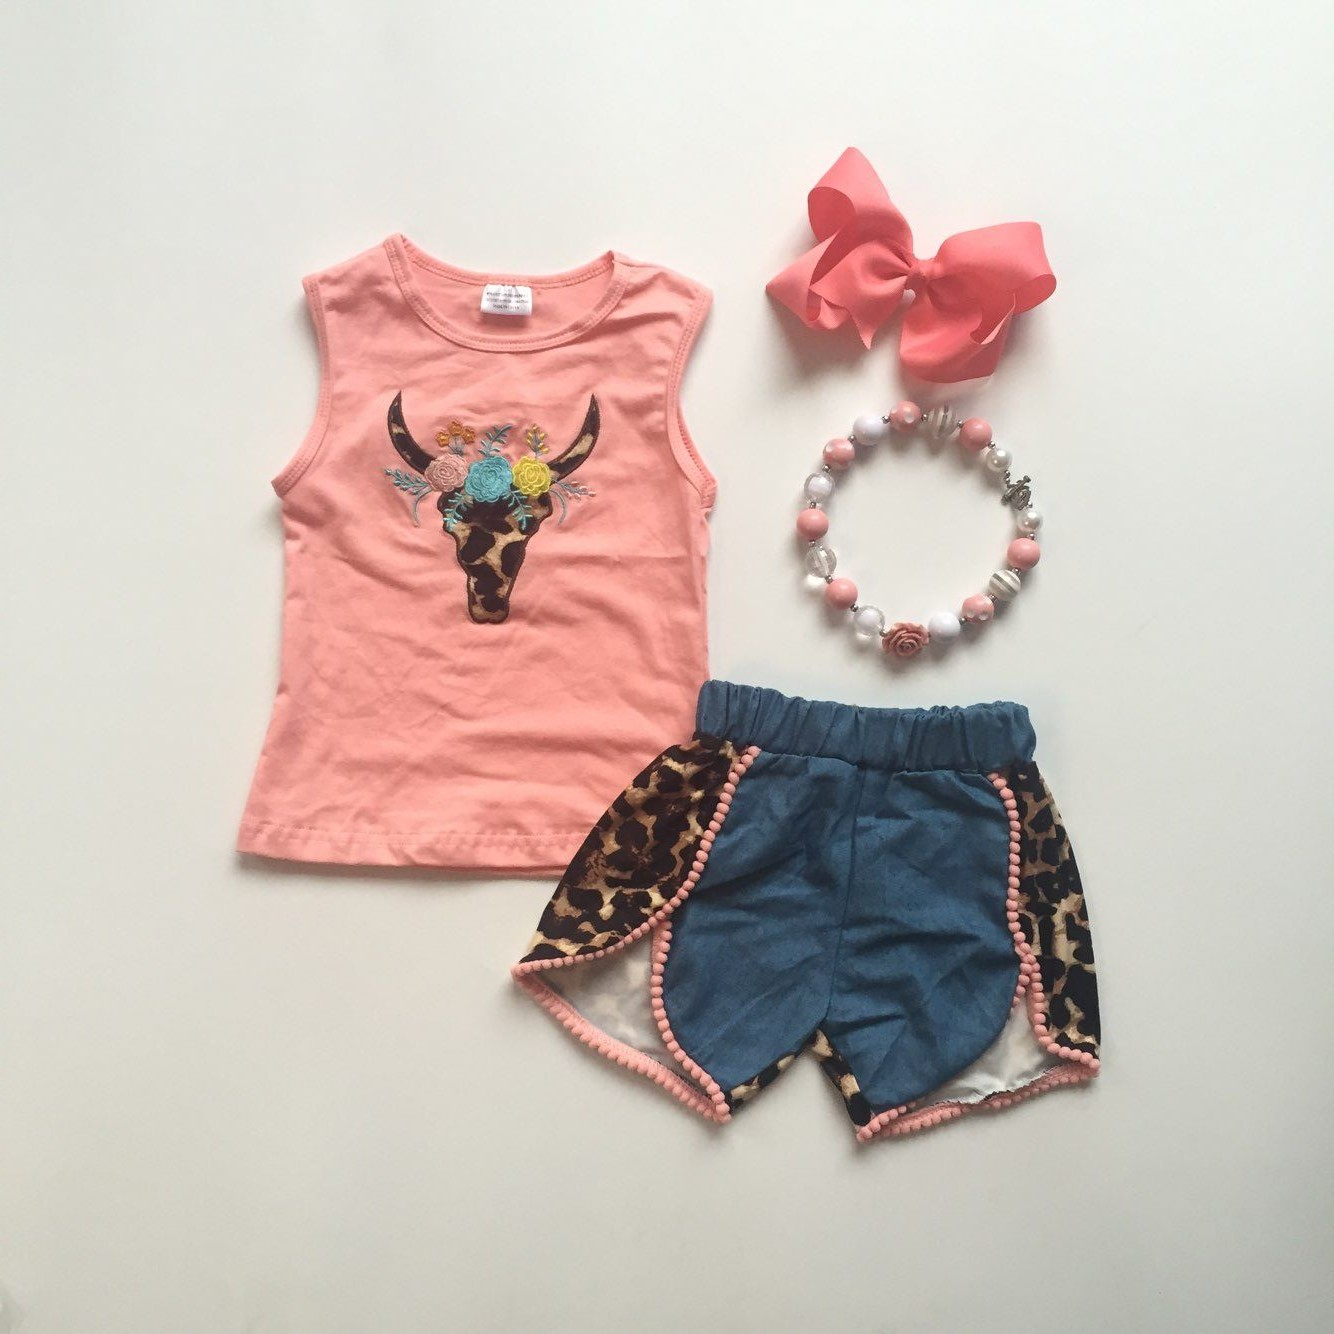 Baby Girls Summer Clothing Cow Head Coral Top Denim Shorts With Leopard Print Kids Boutique Clothes With Accessories